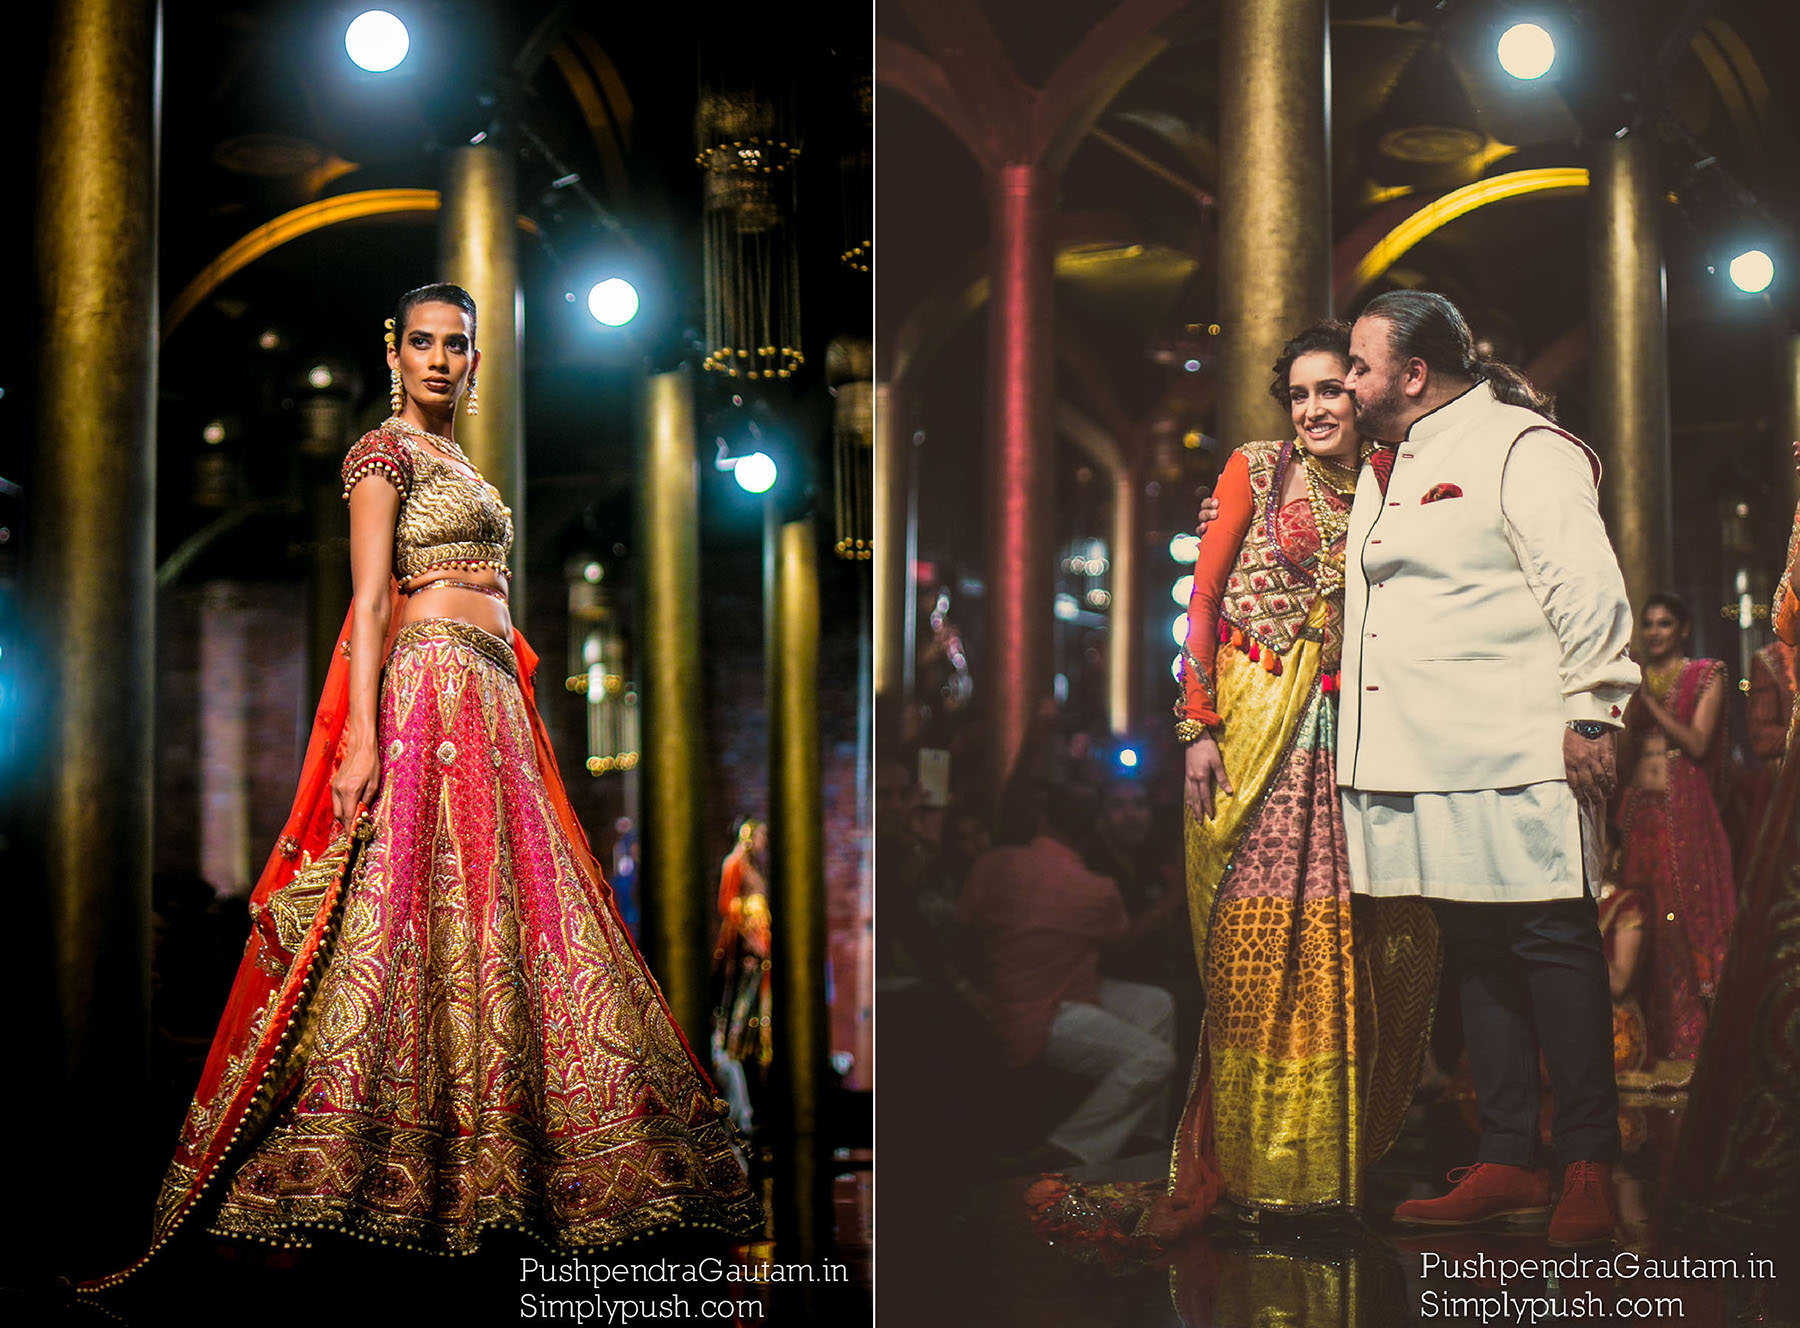 JJ-valaya-collection-pics-bridal-fashion-week-delhi-by-india-best-event-travel-lifestyle-photographer-pushpendra-gautam